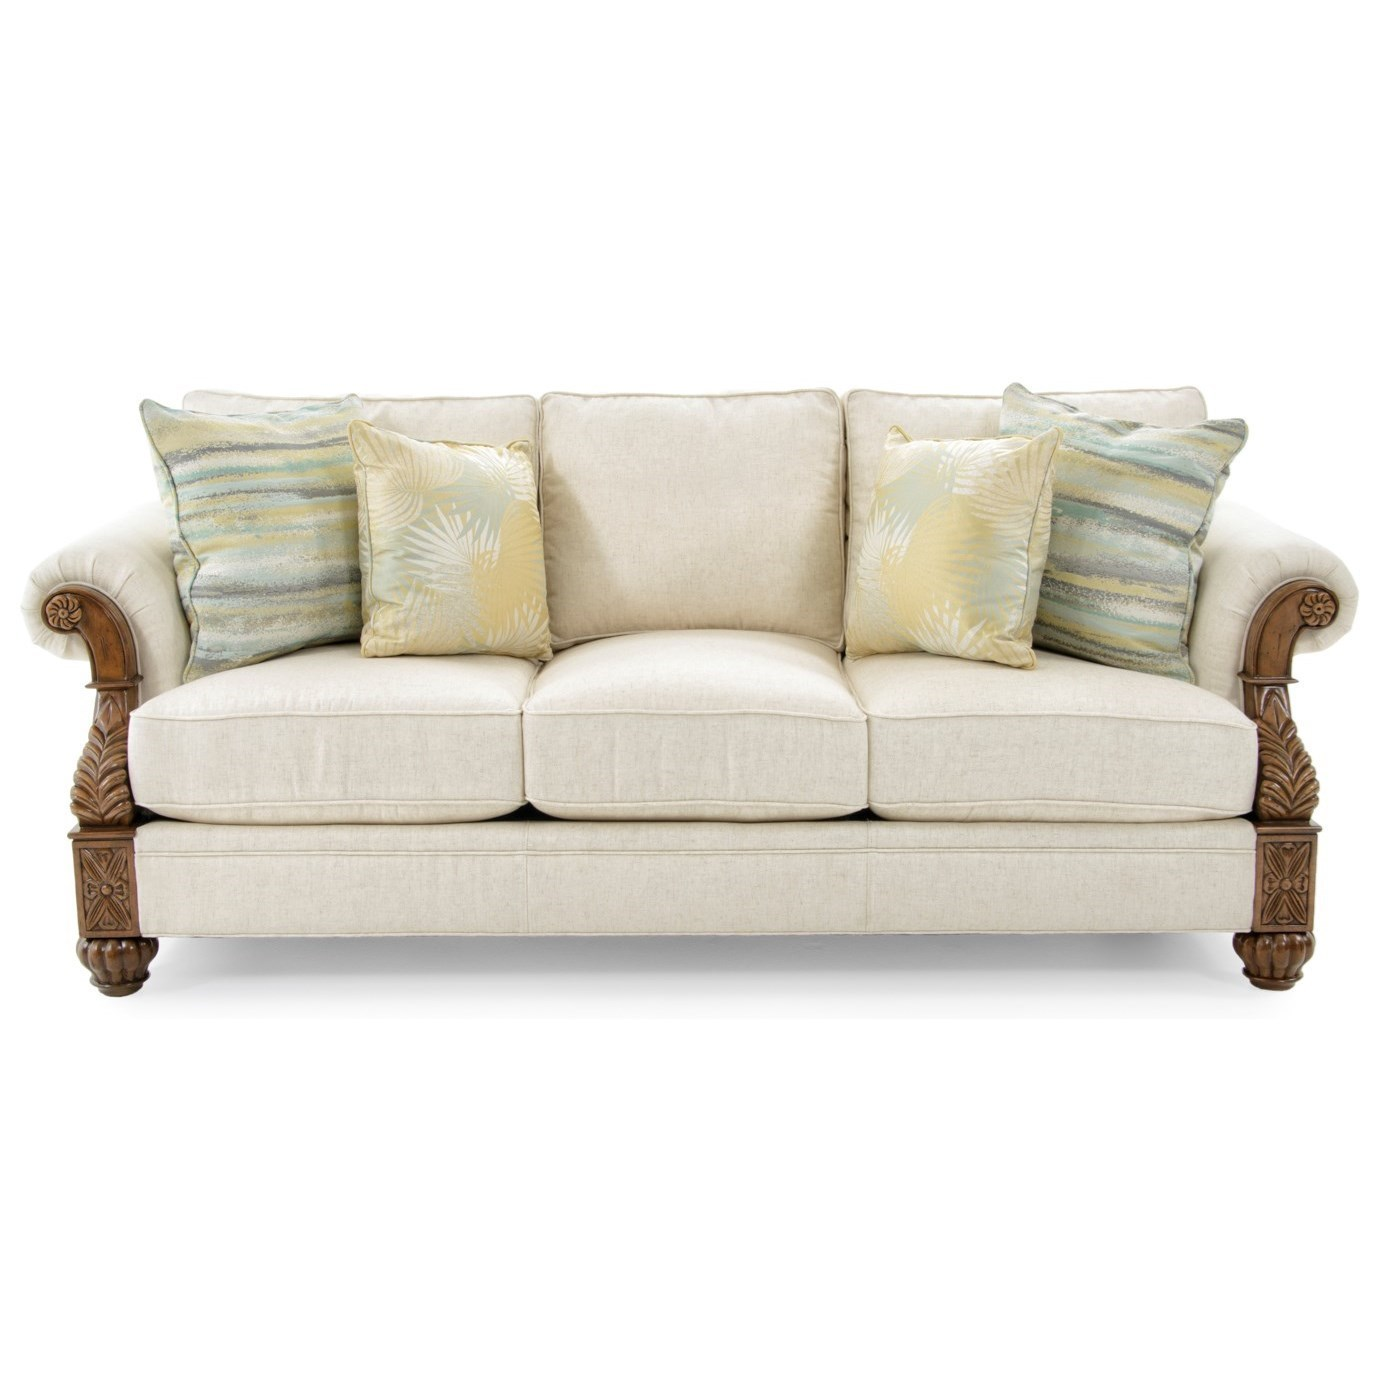 Delicieux Tommy Bahama Home Tommy Bahama Upholstery Benoa Harbour Loose Back Sofa In  Customizable Fabrics